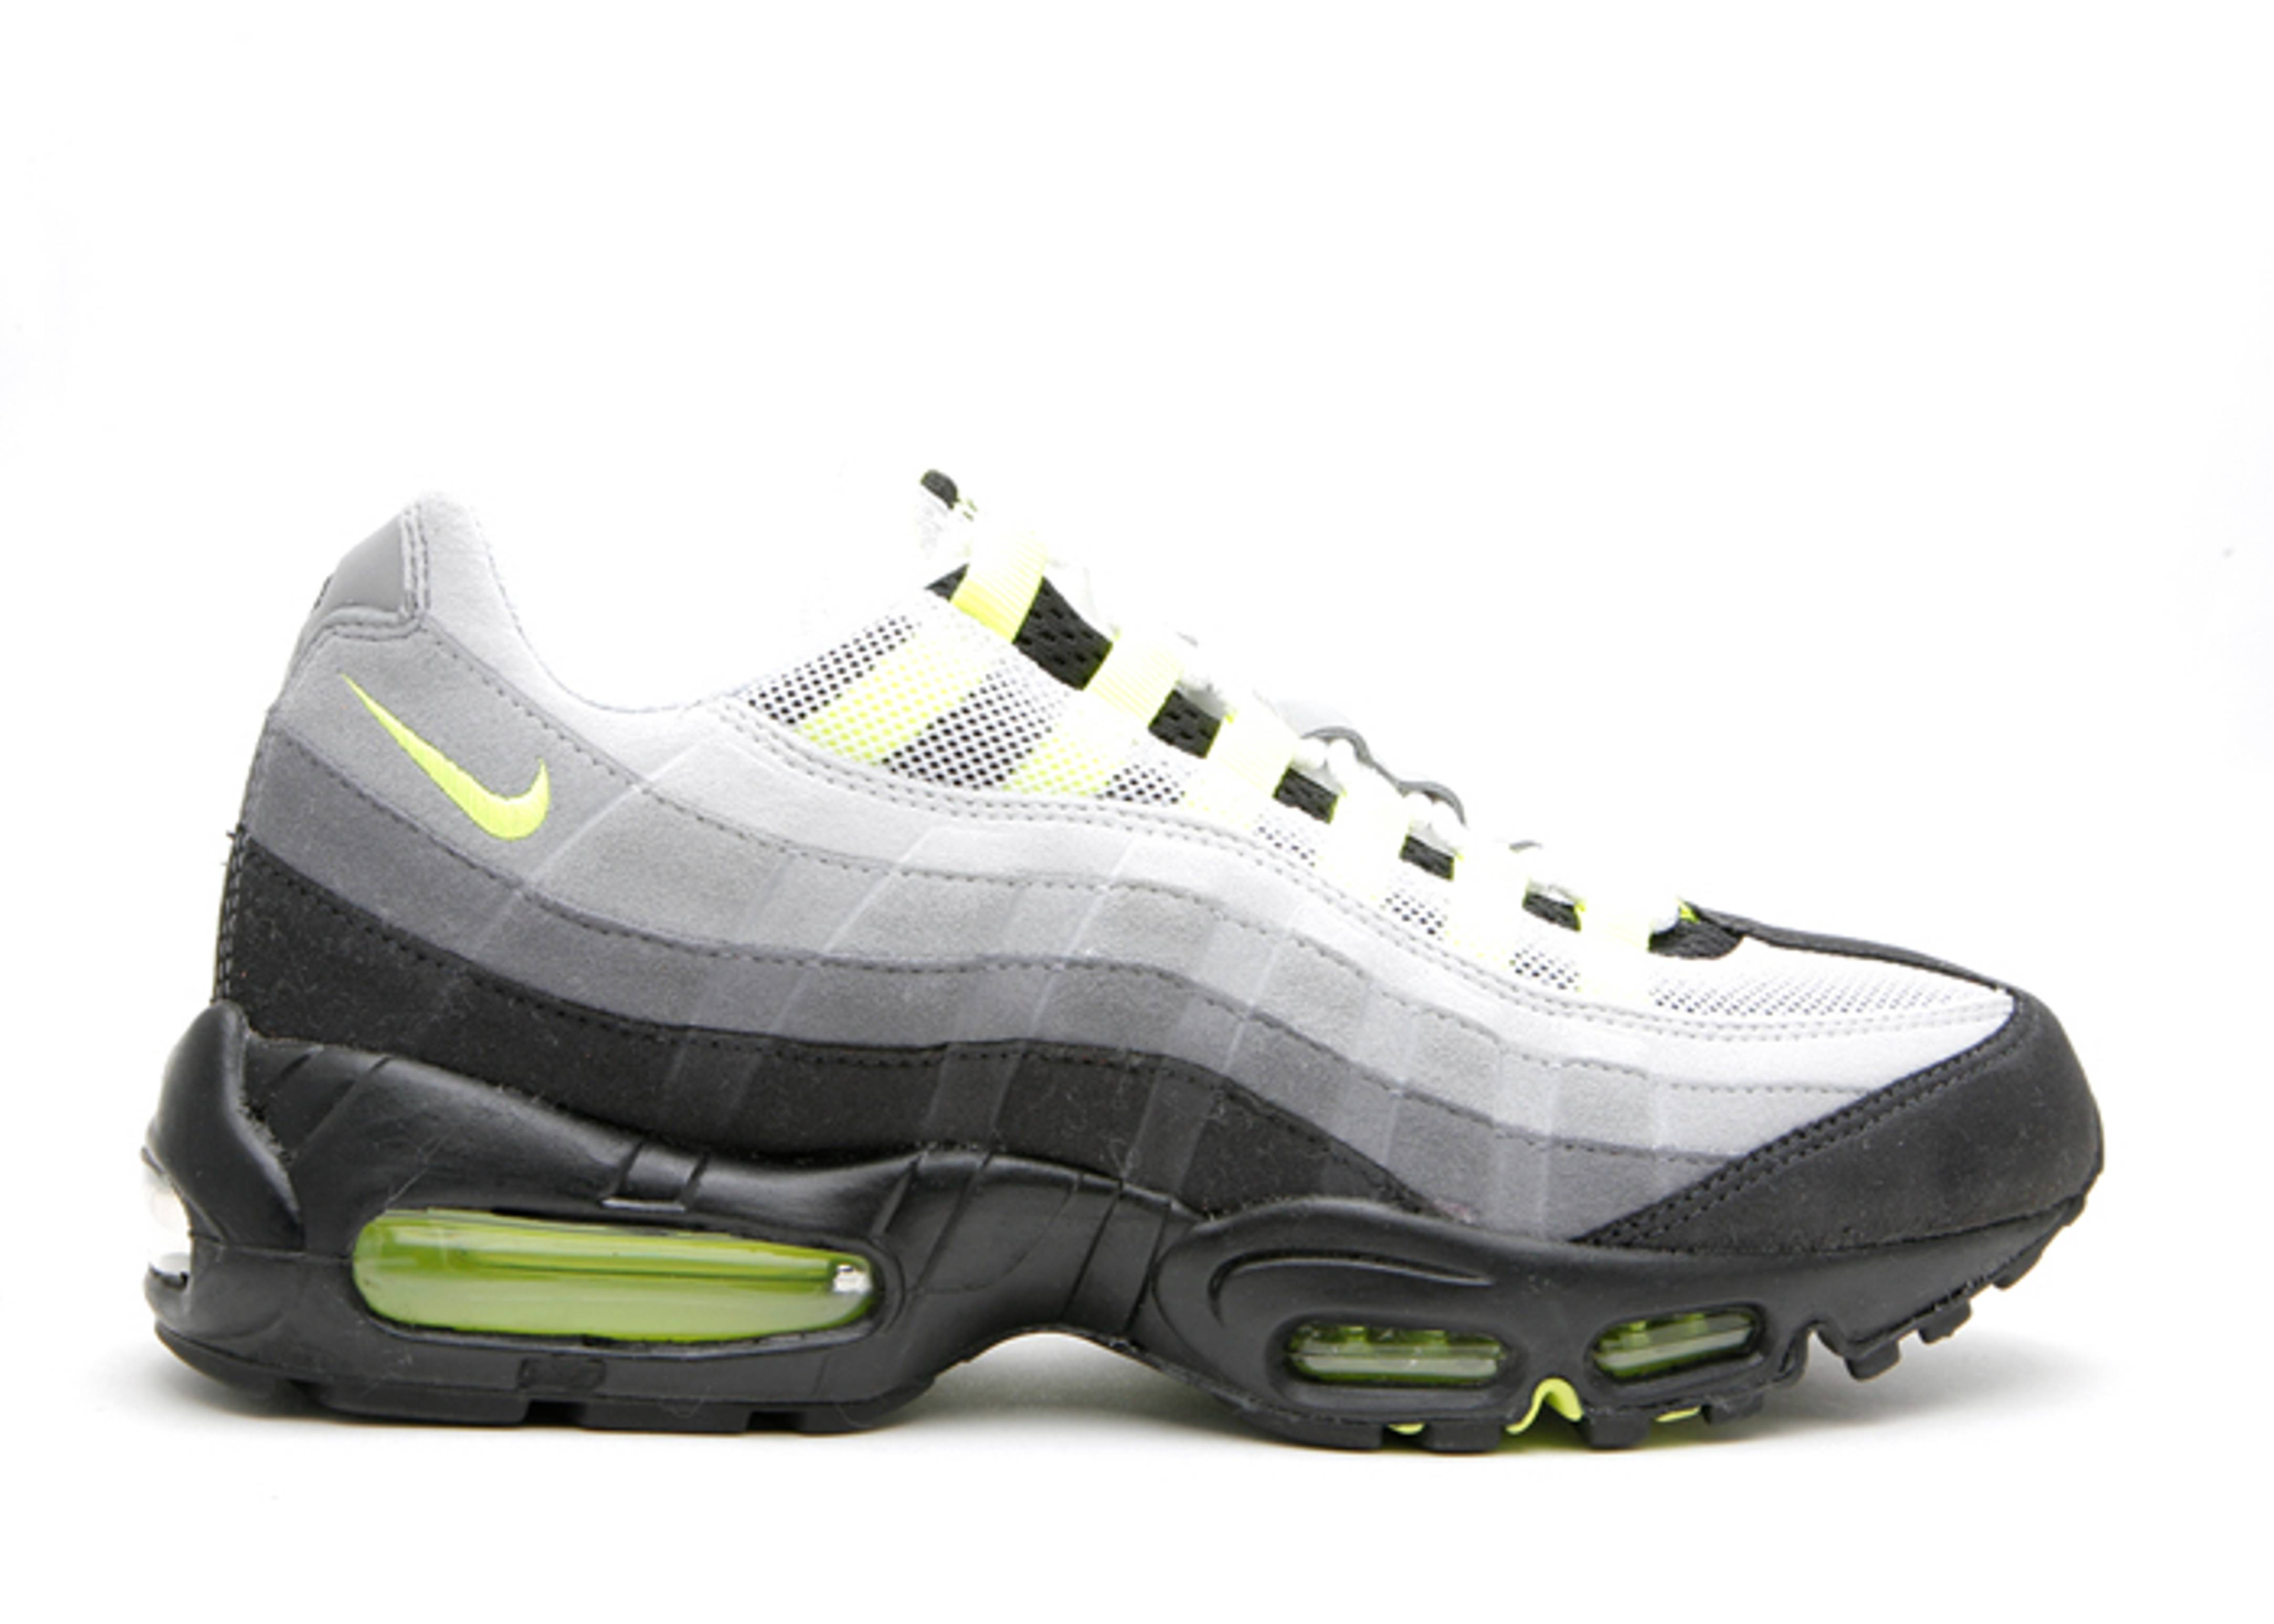 Inclinarse Cuestiones diplomáticas Transitorio  Air Max 95 'Neon' 2010 - Nike - 609048 072 - cool grey/neon yellow | Flight  Club